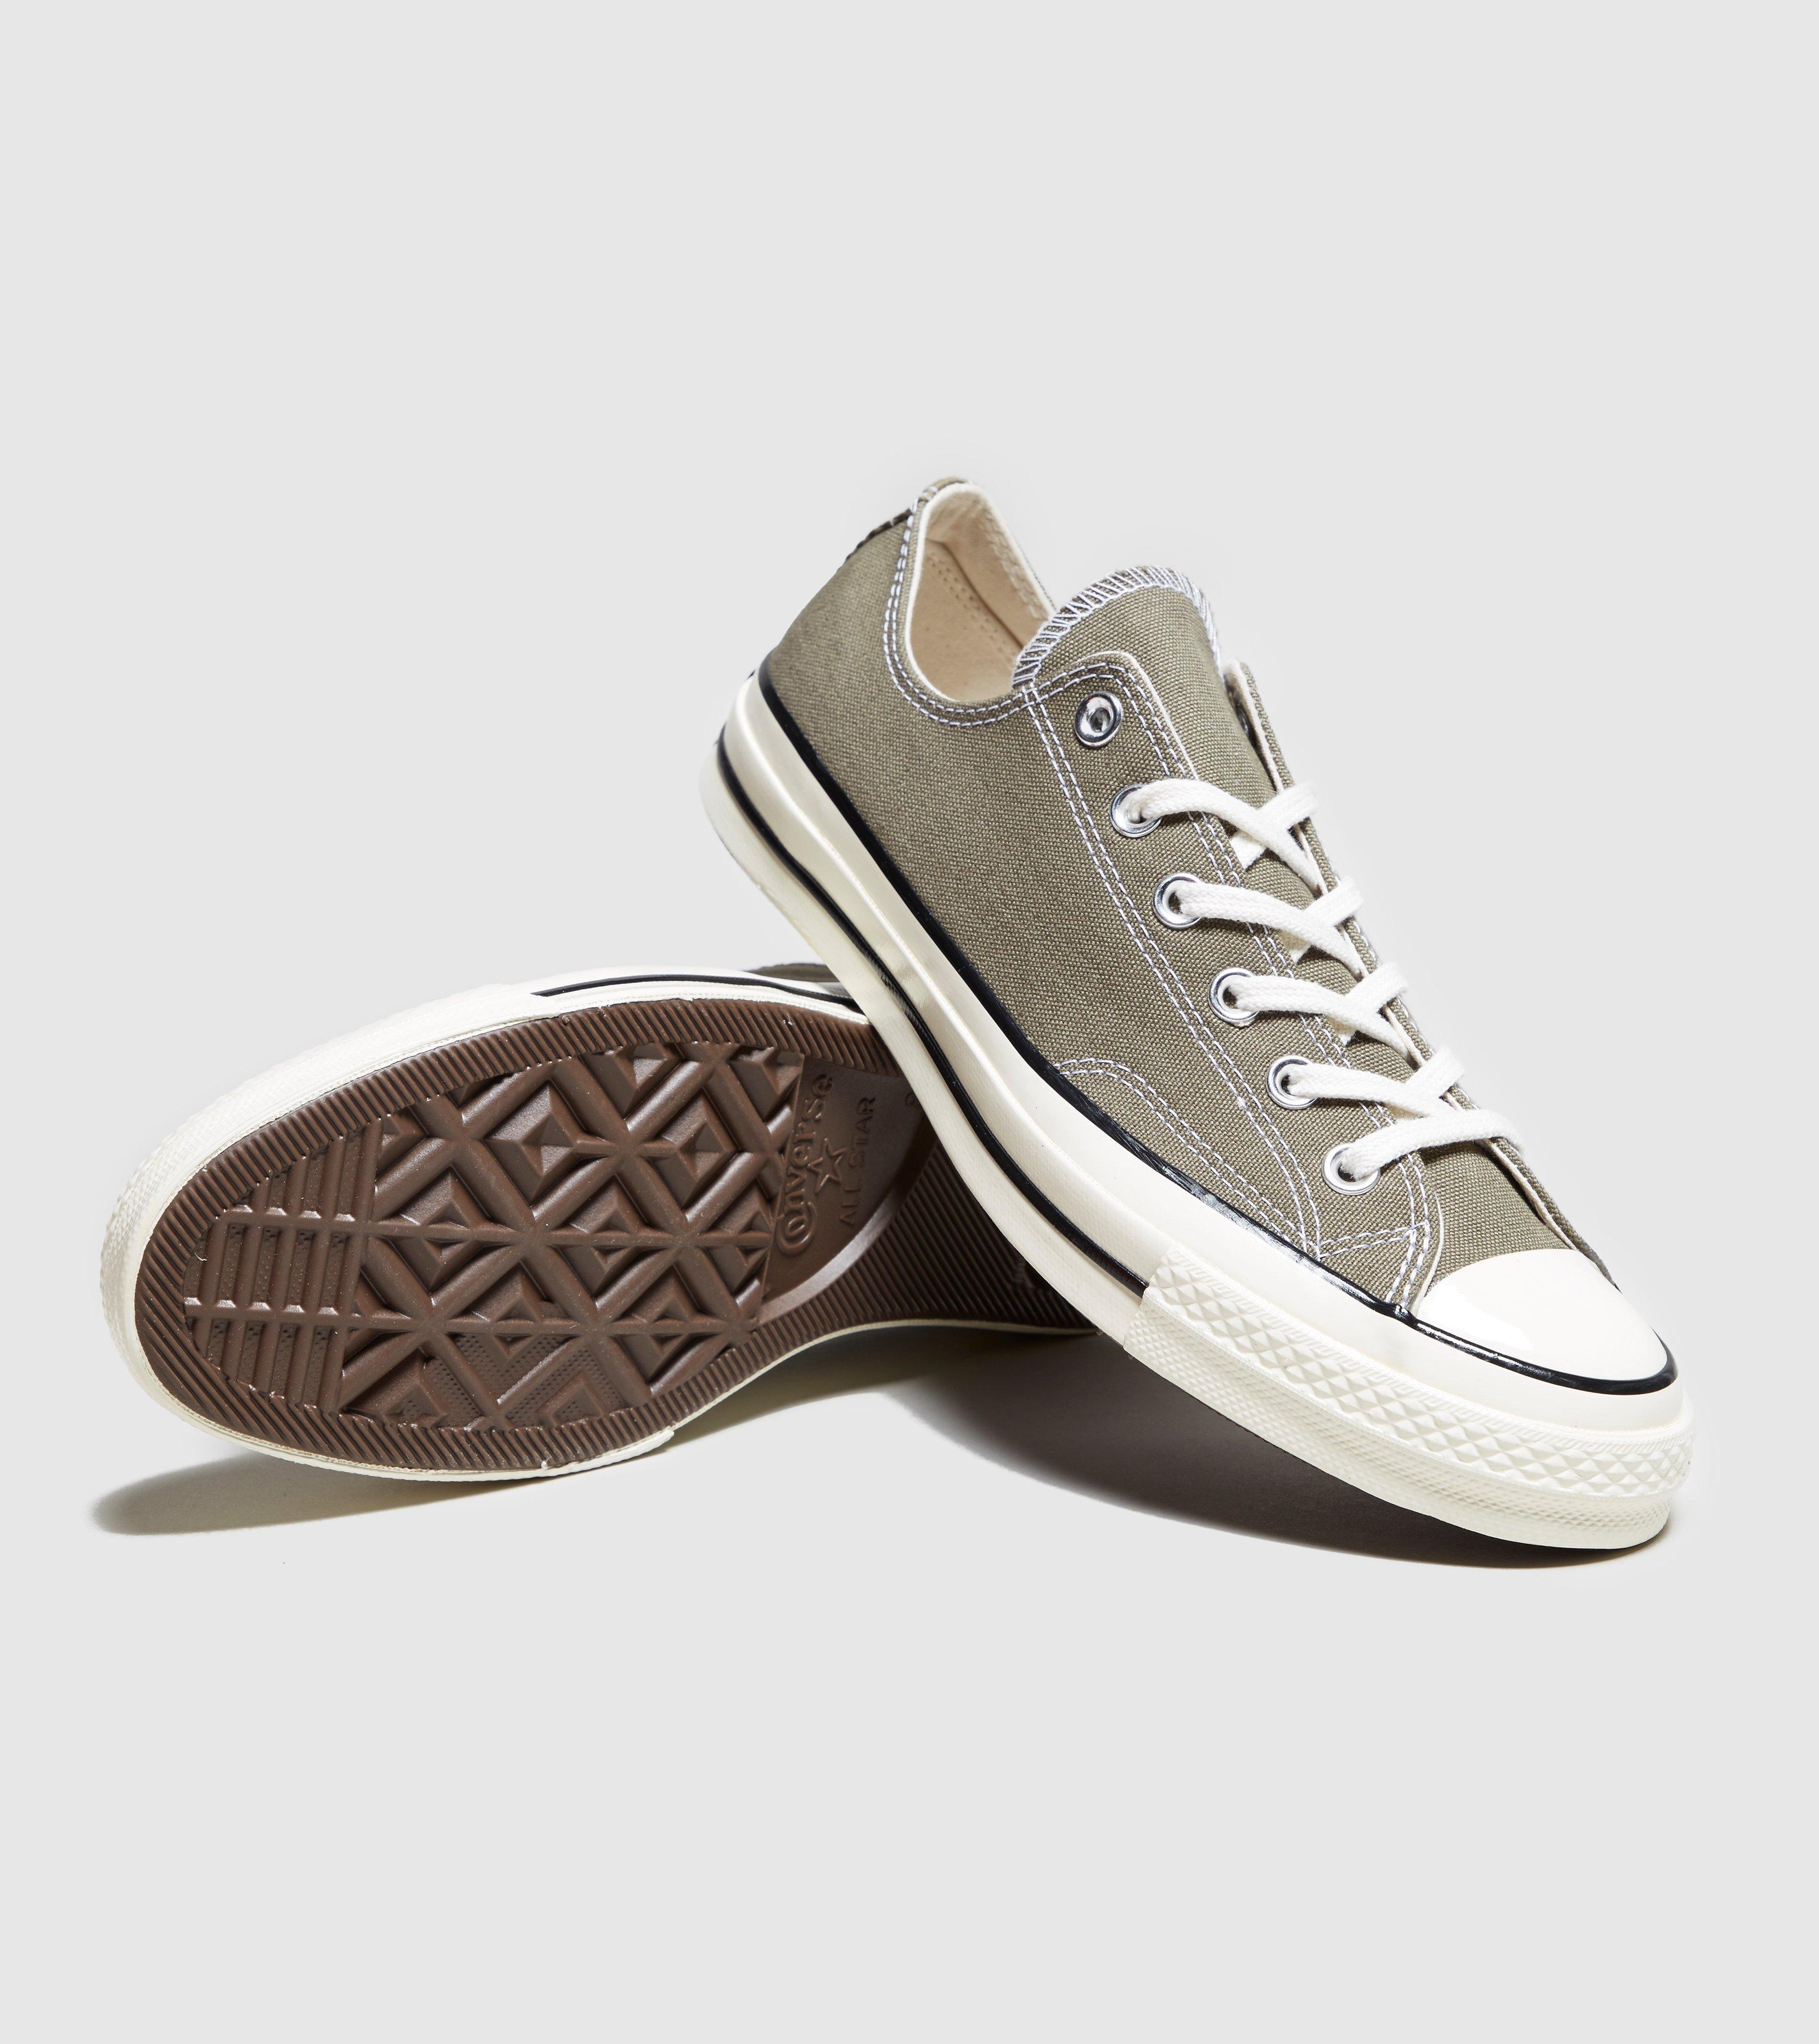 892e271de51f7b ... Lyst - Converse Chuck Taylor All Star 70 Ox Low in Green for new  authentic 5ec37 ...